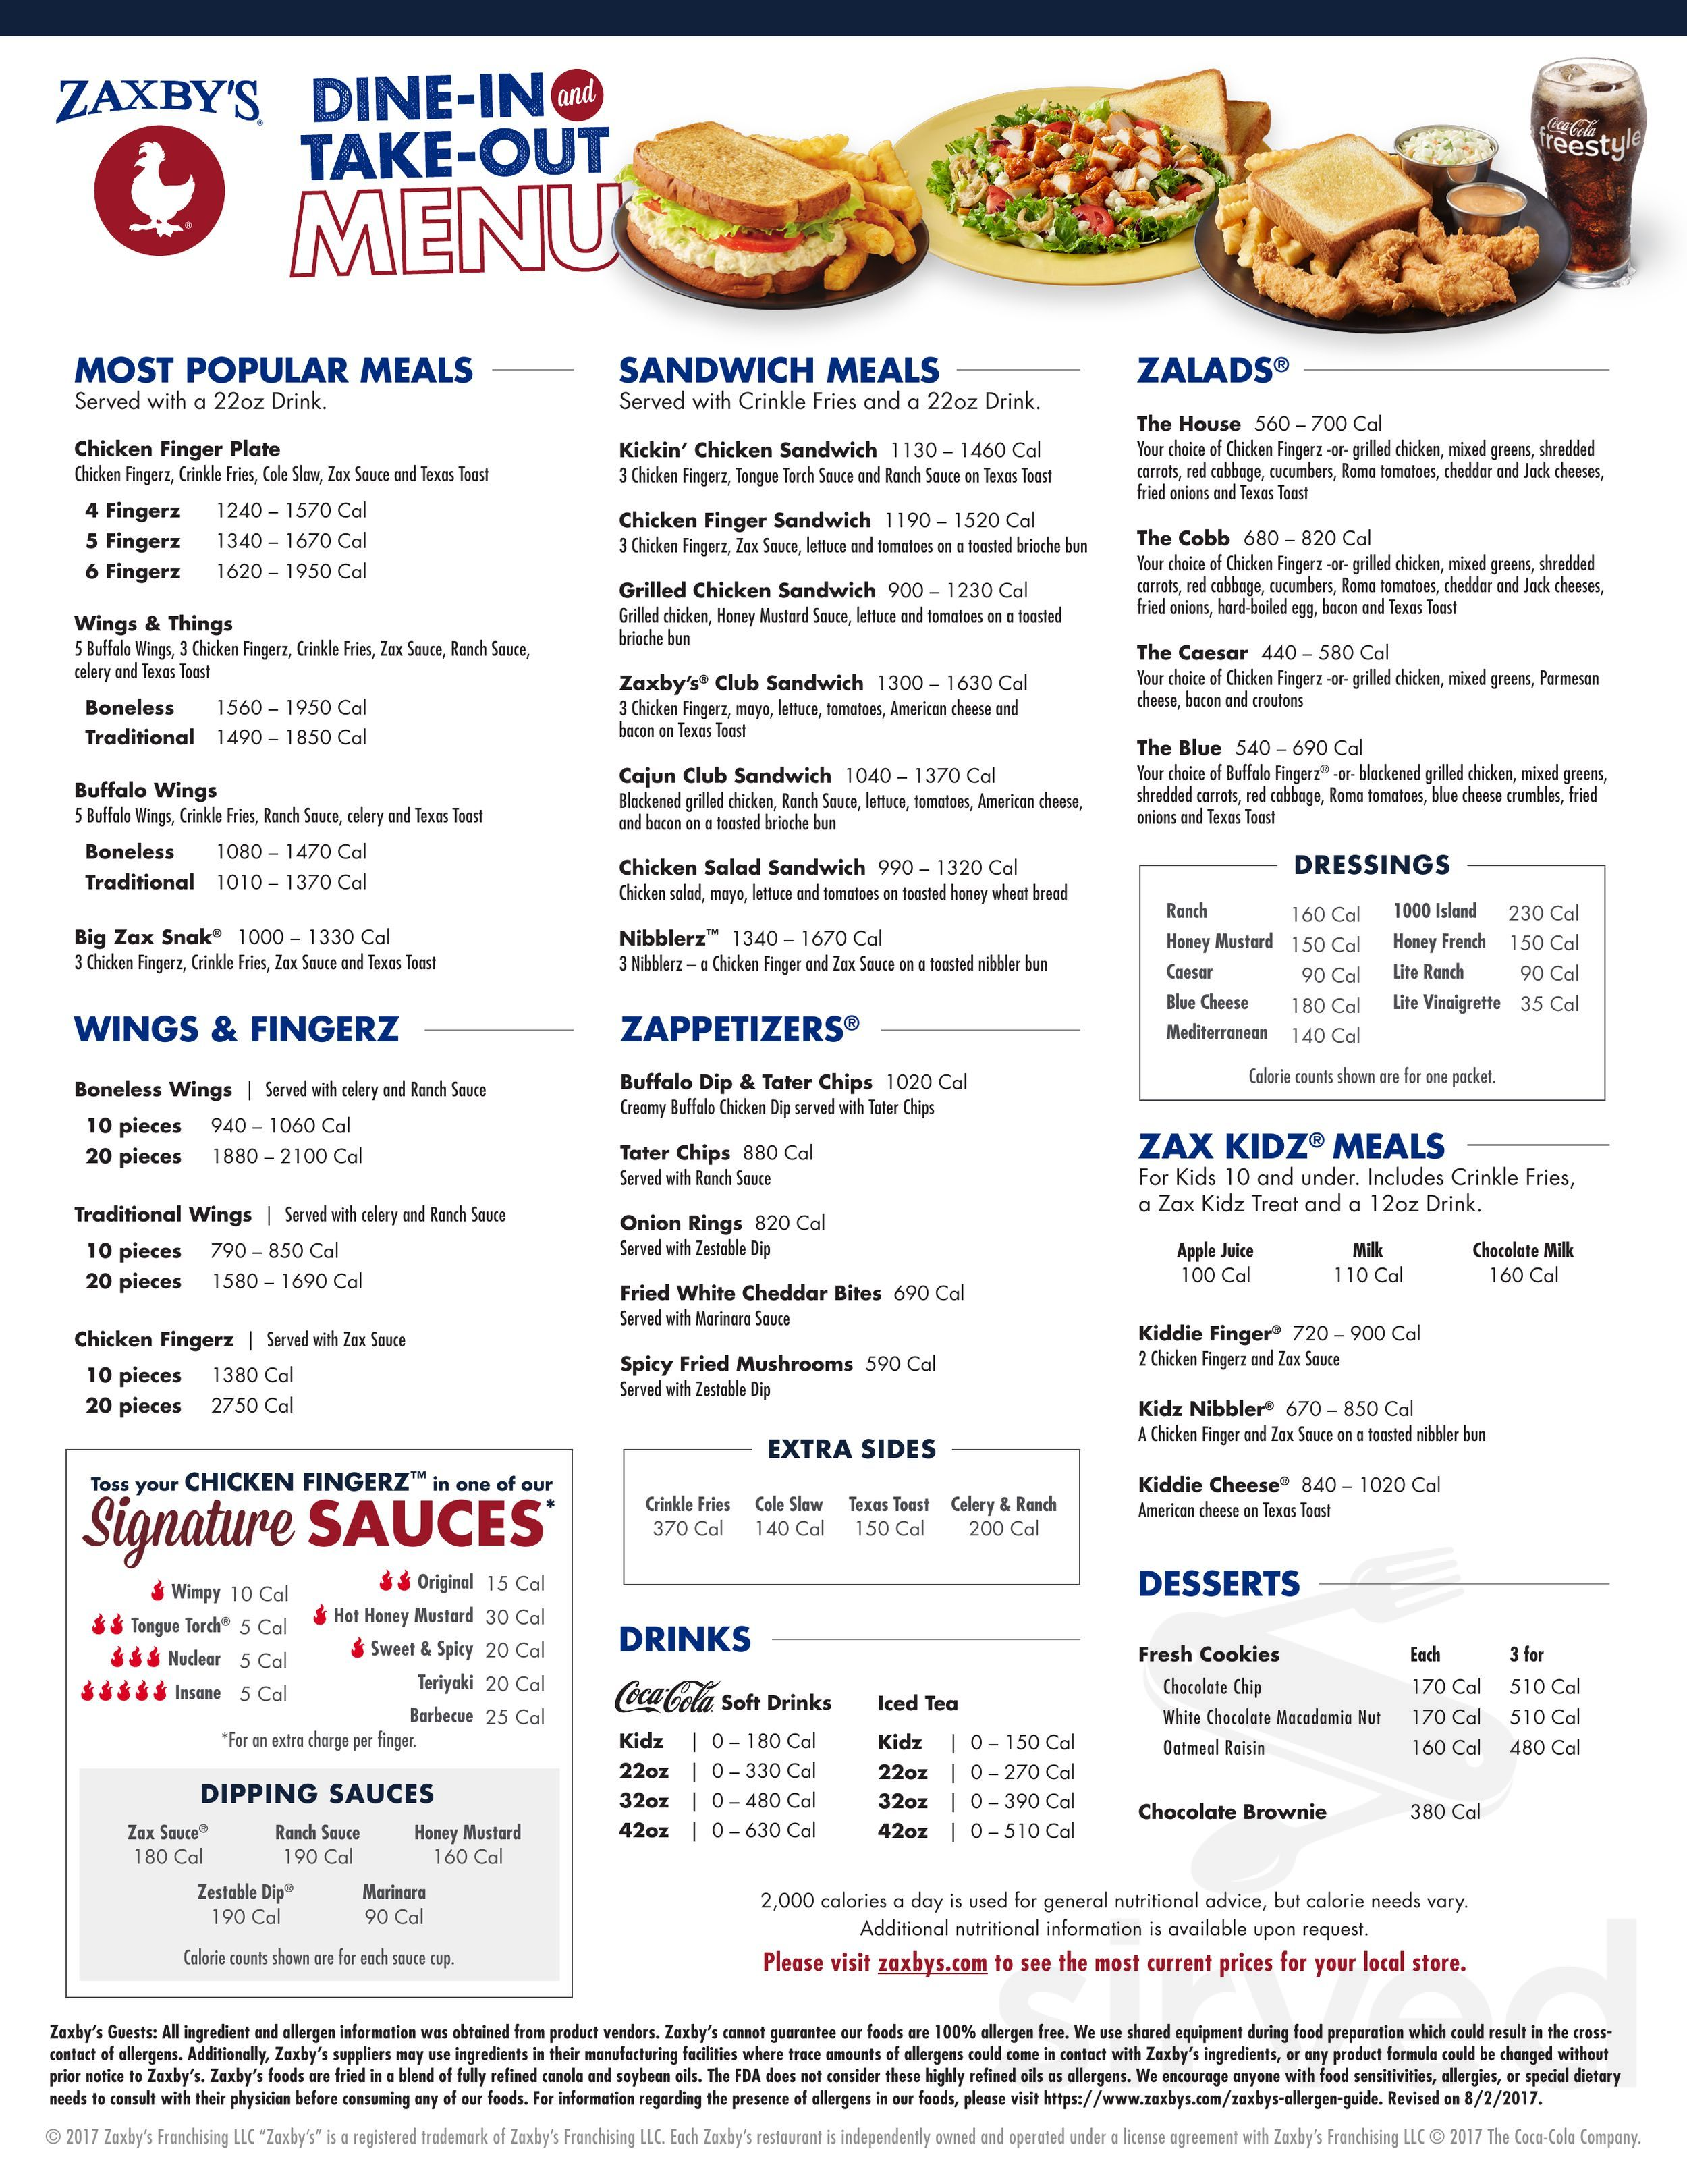 Zaxby S Chicken Fingers Buffalo Wings Menu In Newburgh Indiana Eating chicken my husband got sick with diarrhea 15 minutes after eating his food and has been back and forth to the bathroom with only diarrhea ever since see less. chicken fingers buffalo wings menu